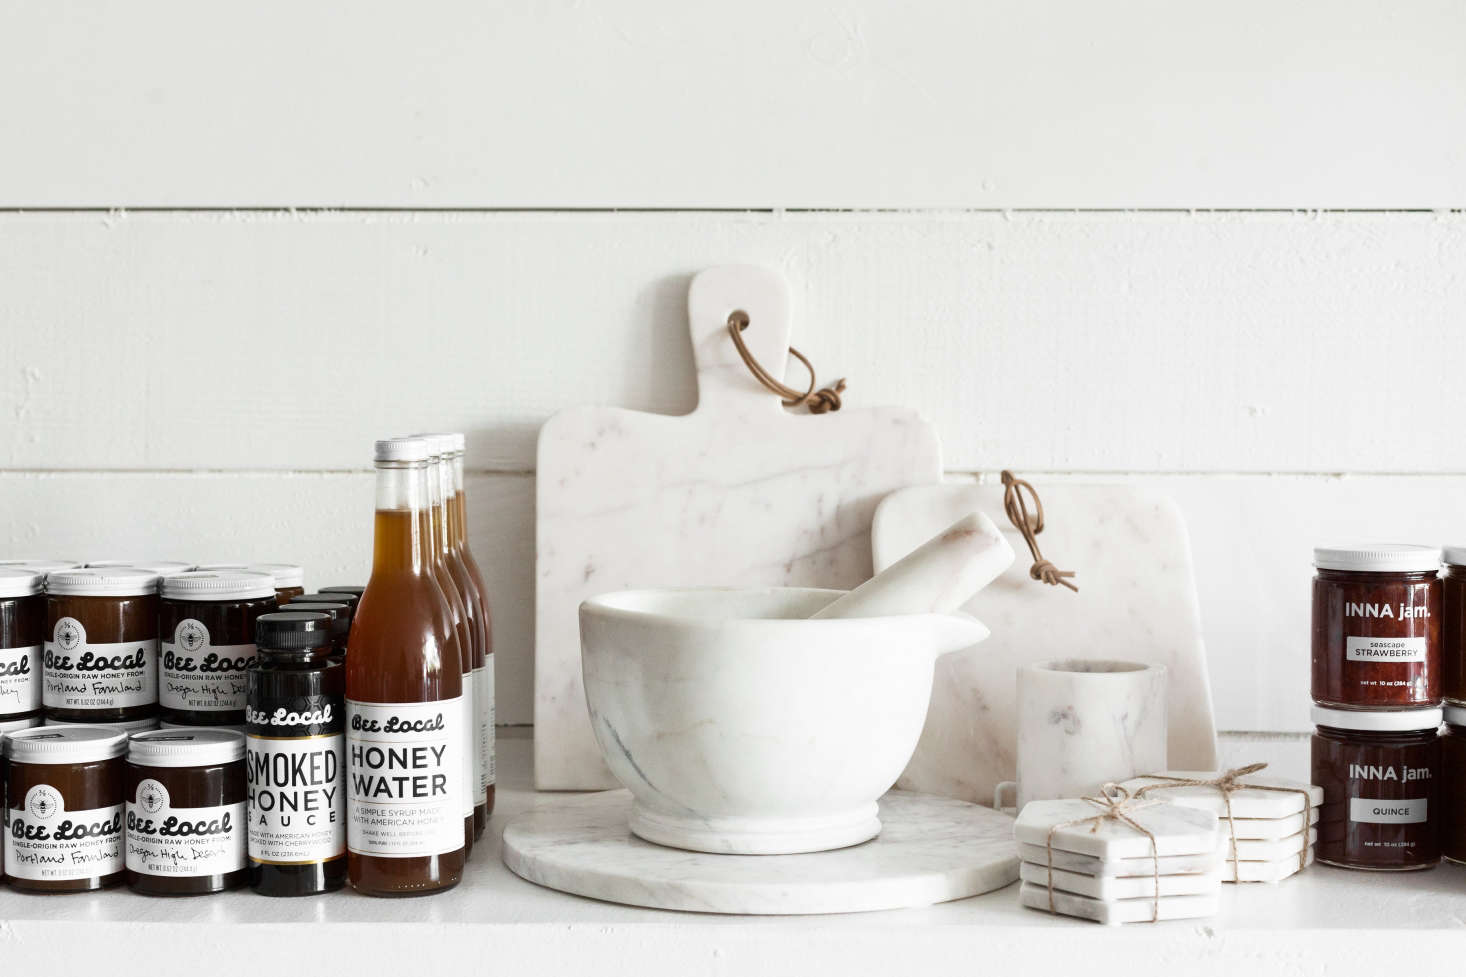 Flanking a trio of Couleur Nature marble serving boards: gifts from Bee Local in Portland, Oregon, and Inna Jam in Emeryville, California. The mortar and pestle is bySir/Madam.